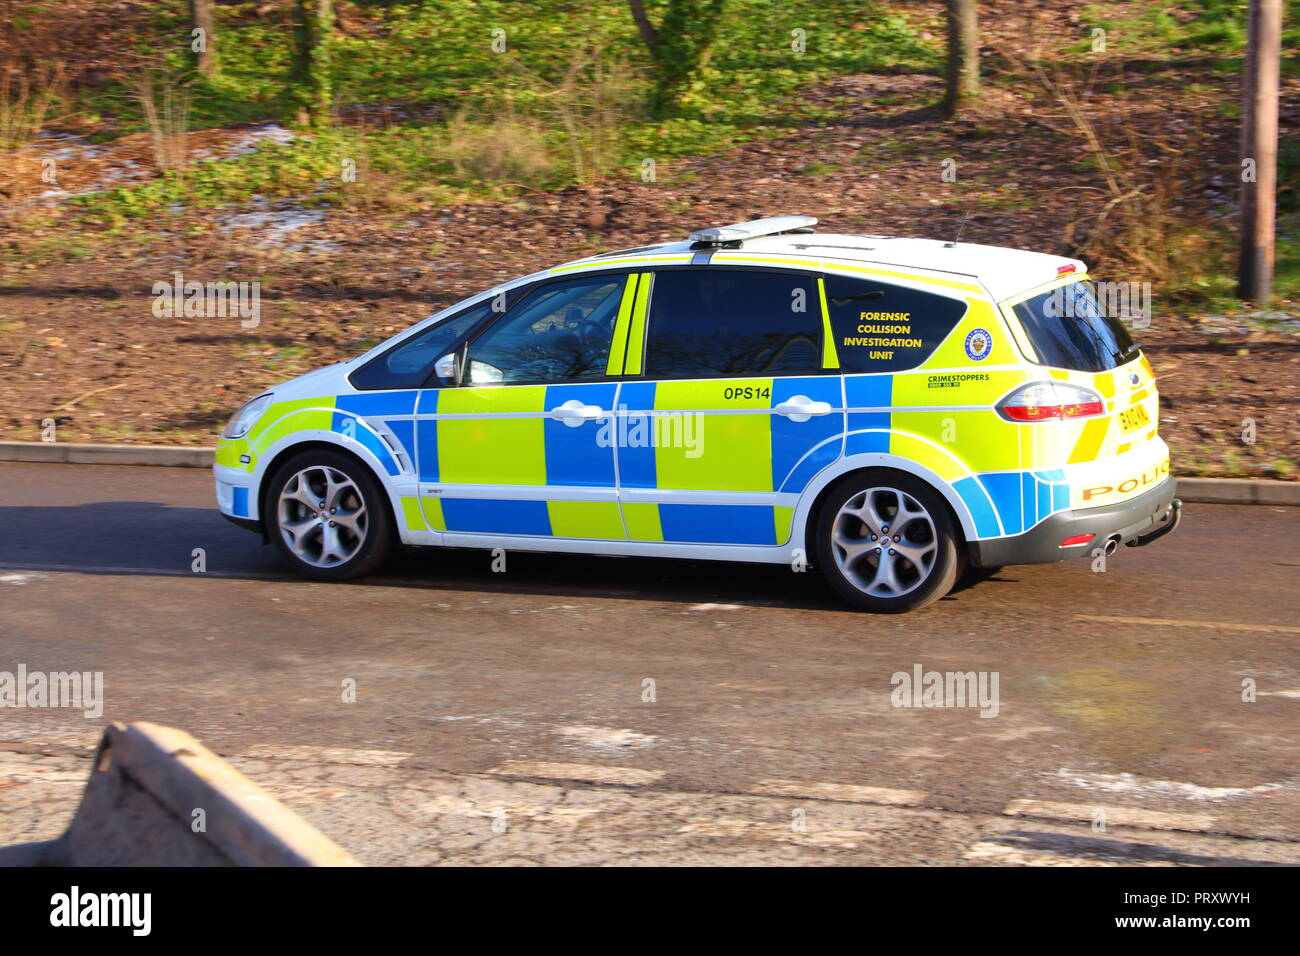 A Collision Investigation Unit vehicle at Central Motorway Police Group Headquarters at Perry Barr in Birmingham - Stock Image